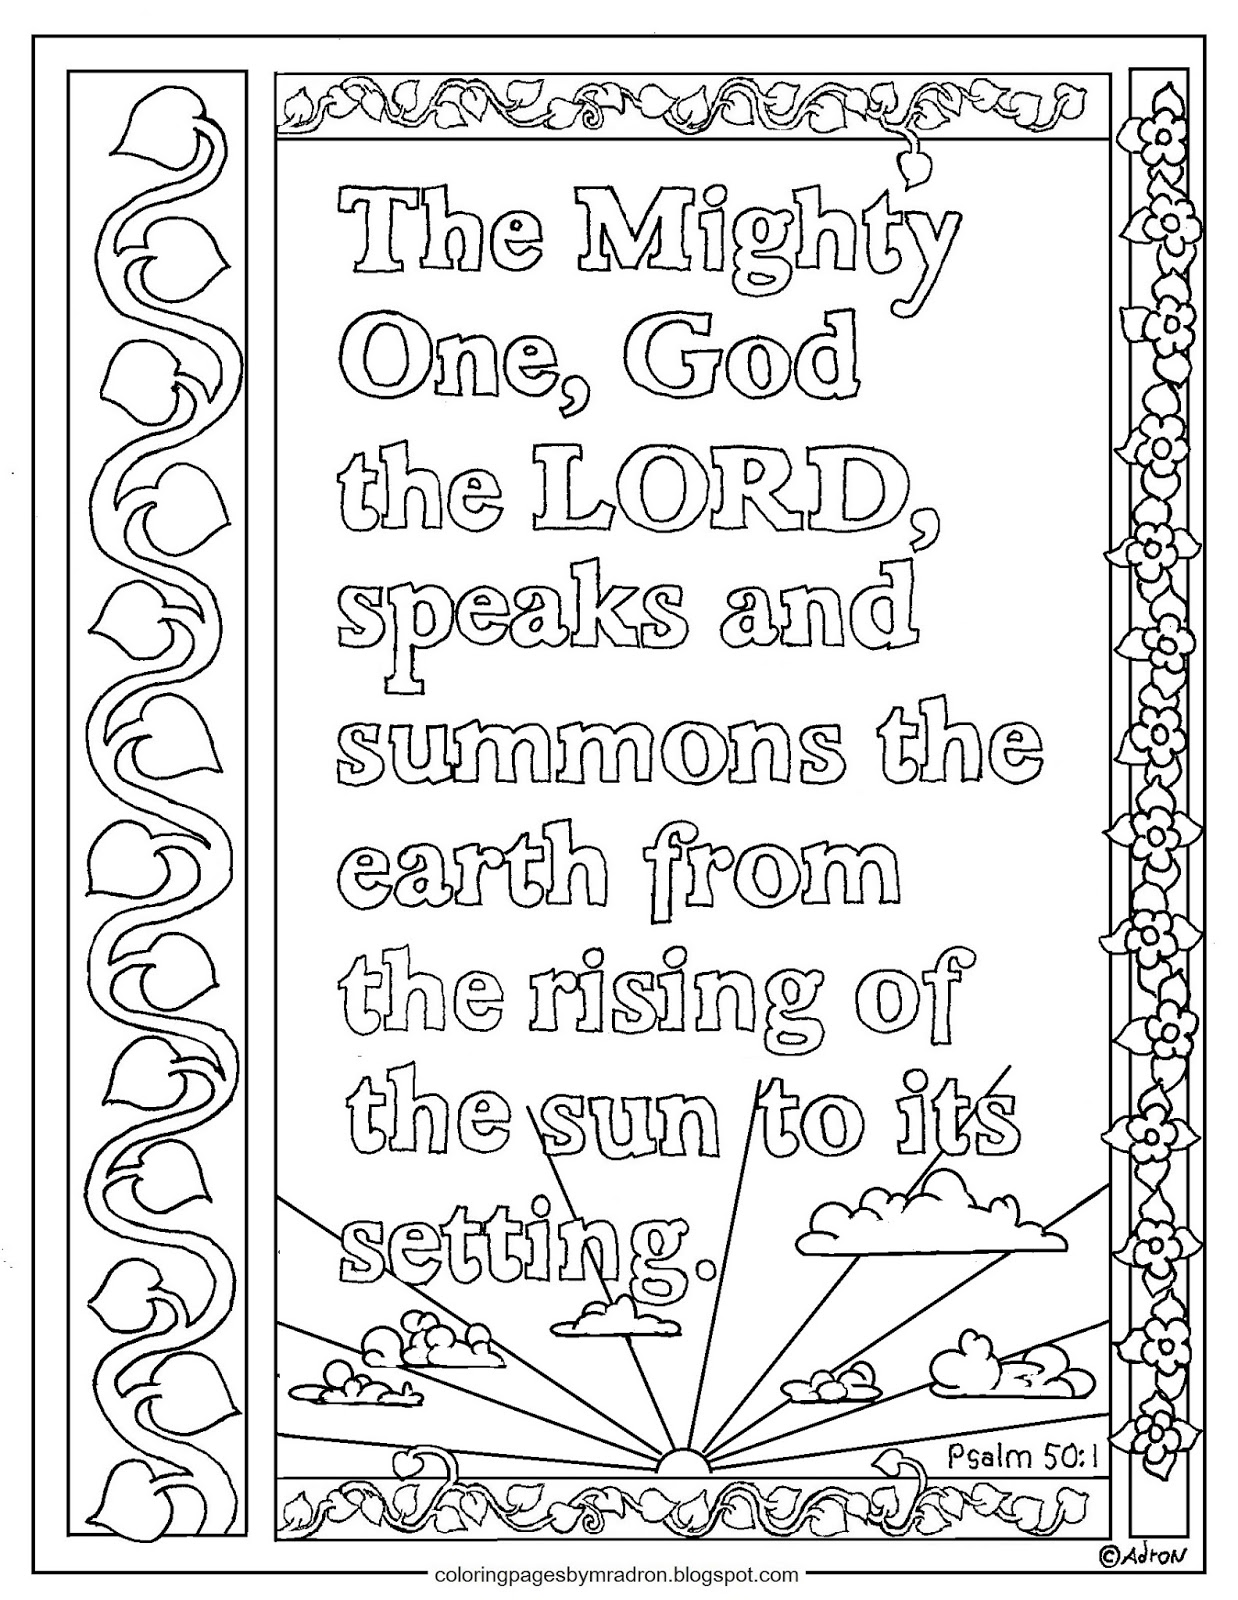 coloring psalm 1 coloring pages for kids by mr adron psalm 501 print and psalm coloring 1